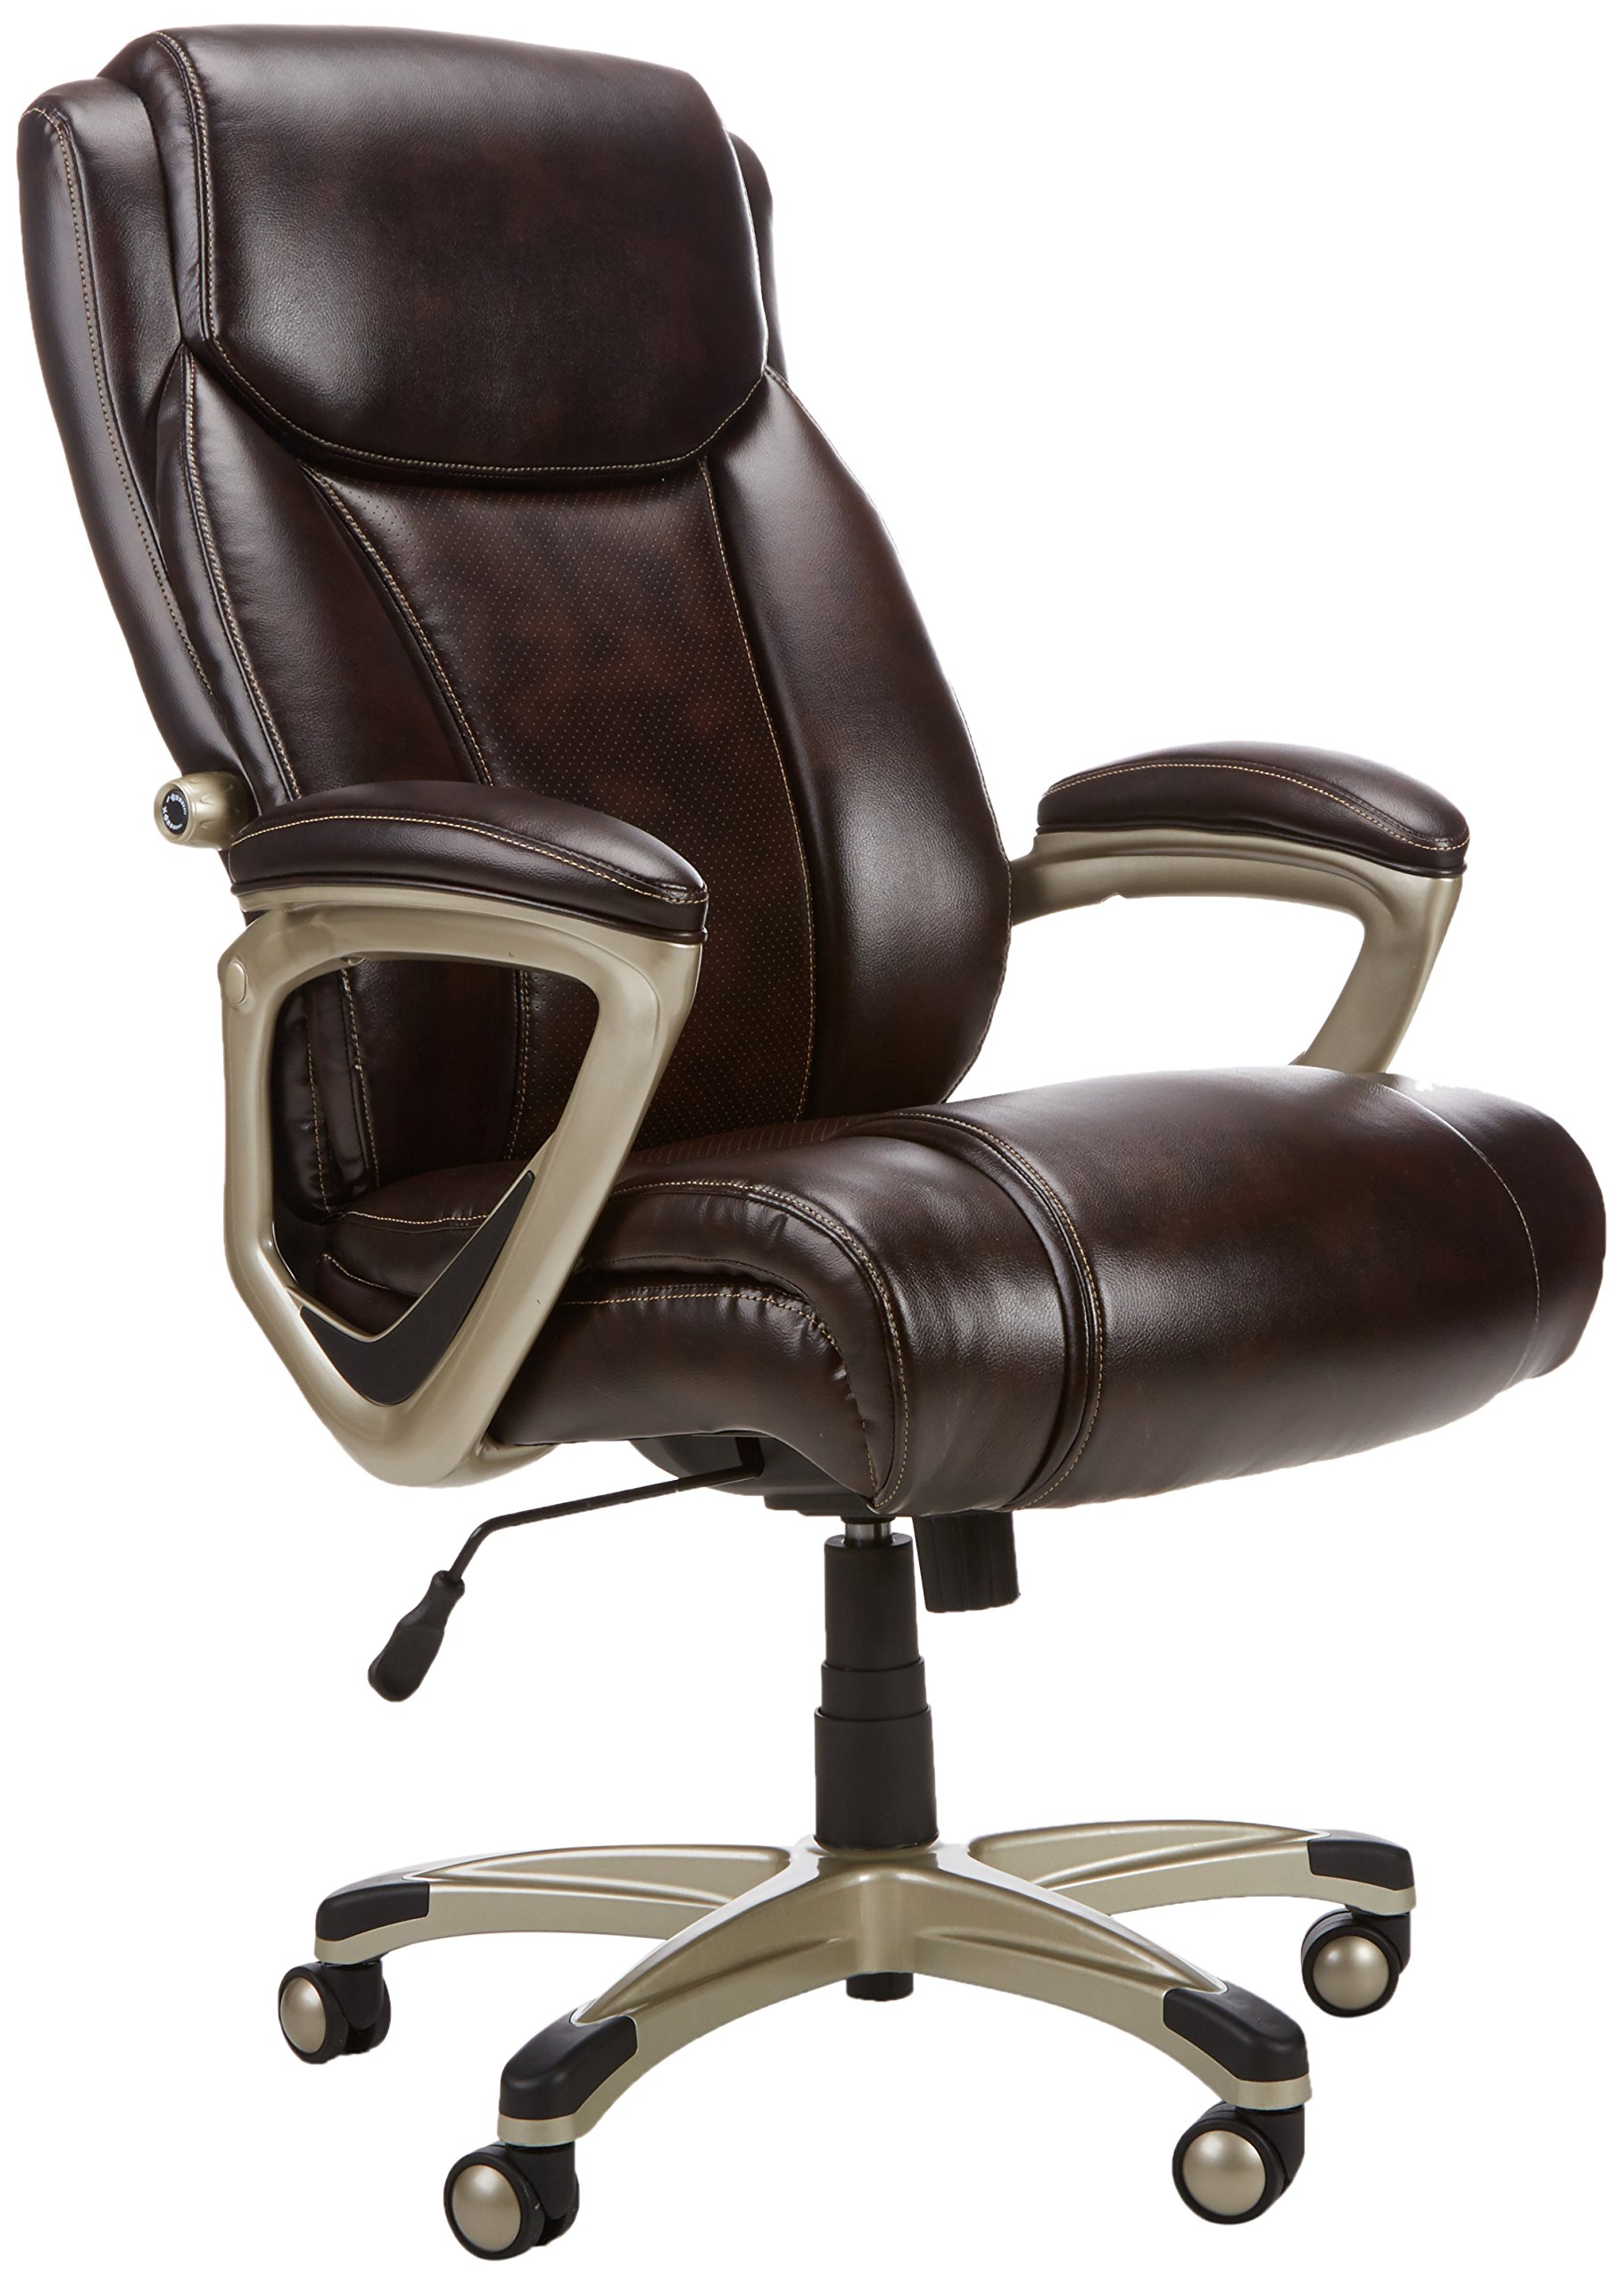 AmazonBasics Big & Tall Executive Computer Desk Chair - Adjustable with Armrest, 350-Pound Capacity - Brown with Pewter Finish by AmazonBasics